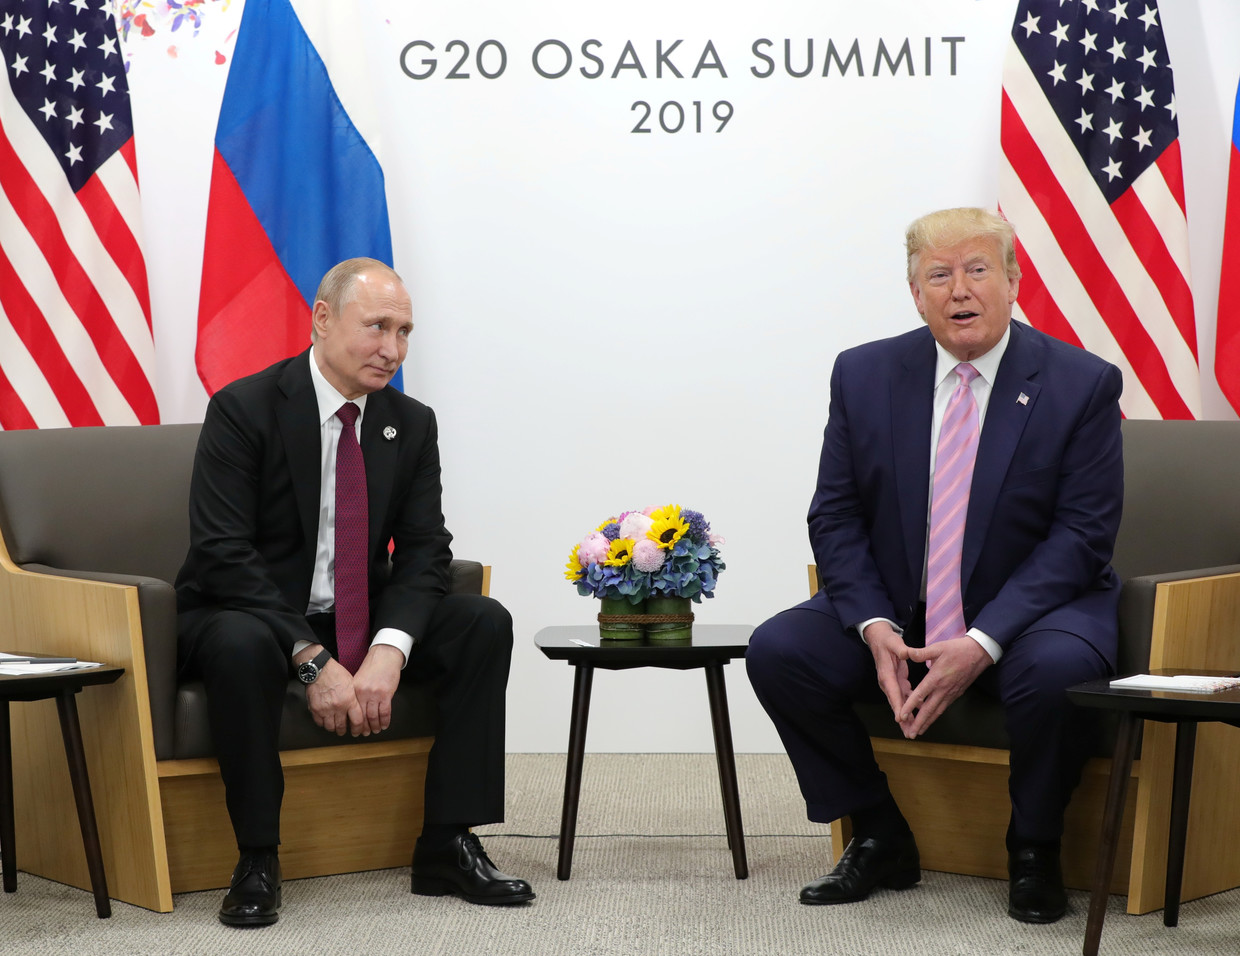 Vladimir Putin and Donald Trump at G20 summit